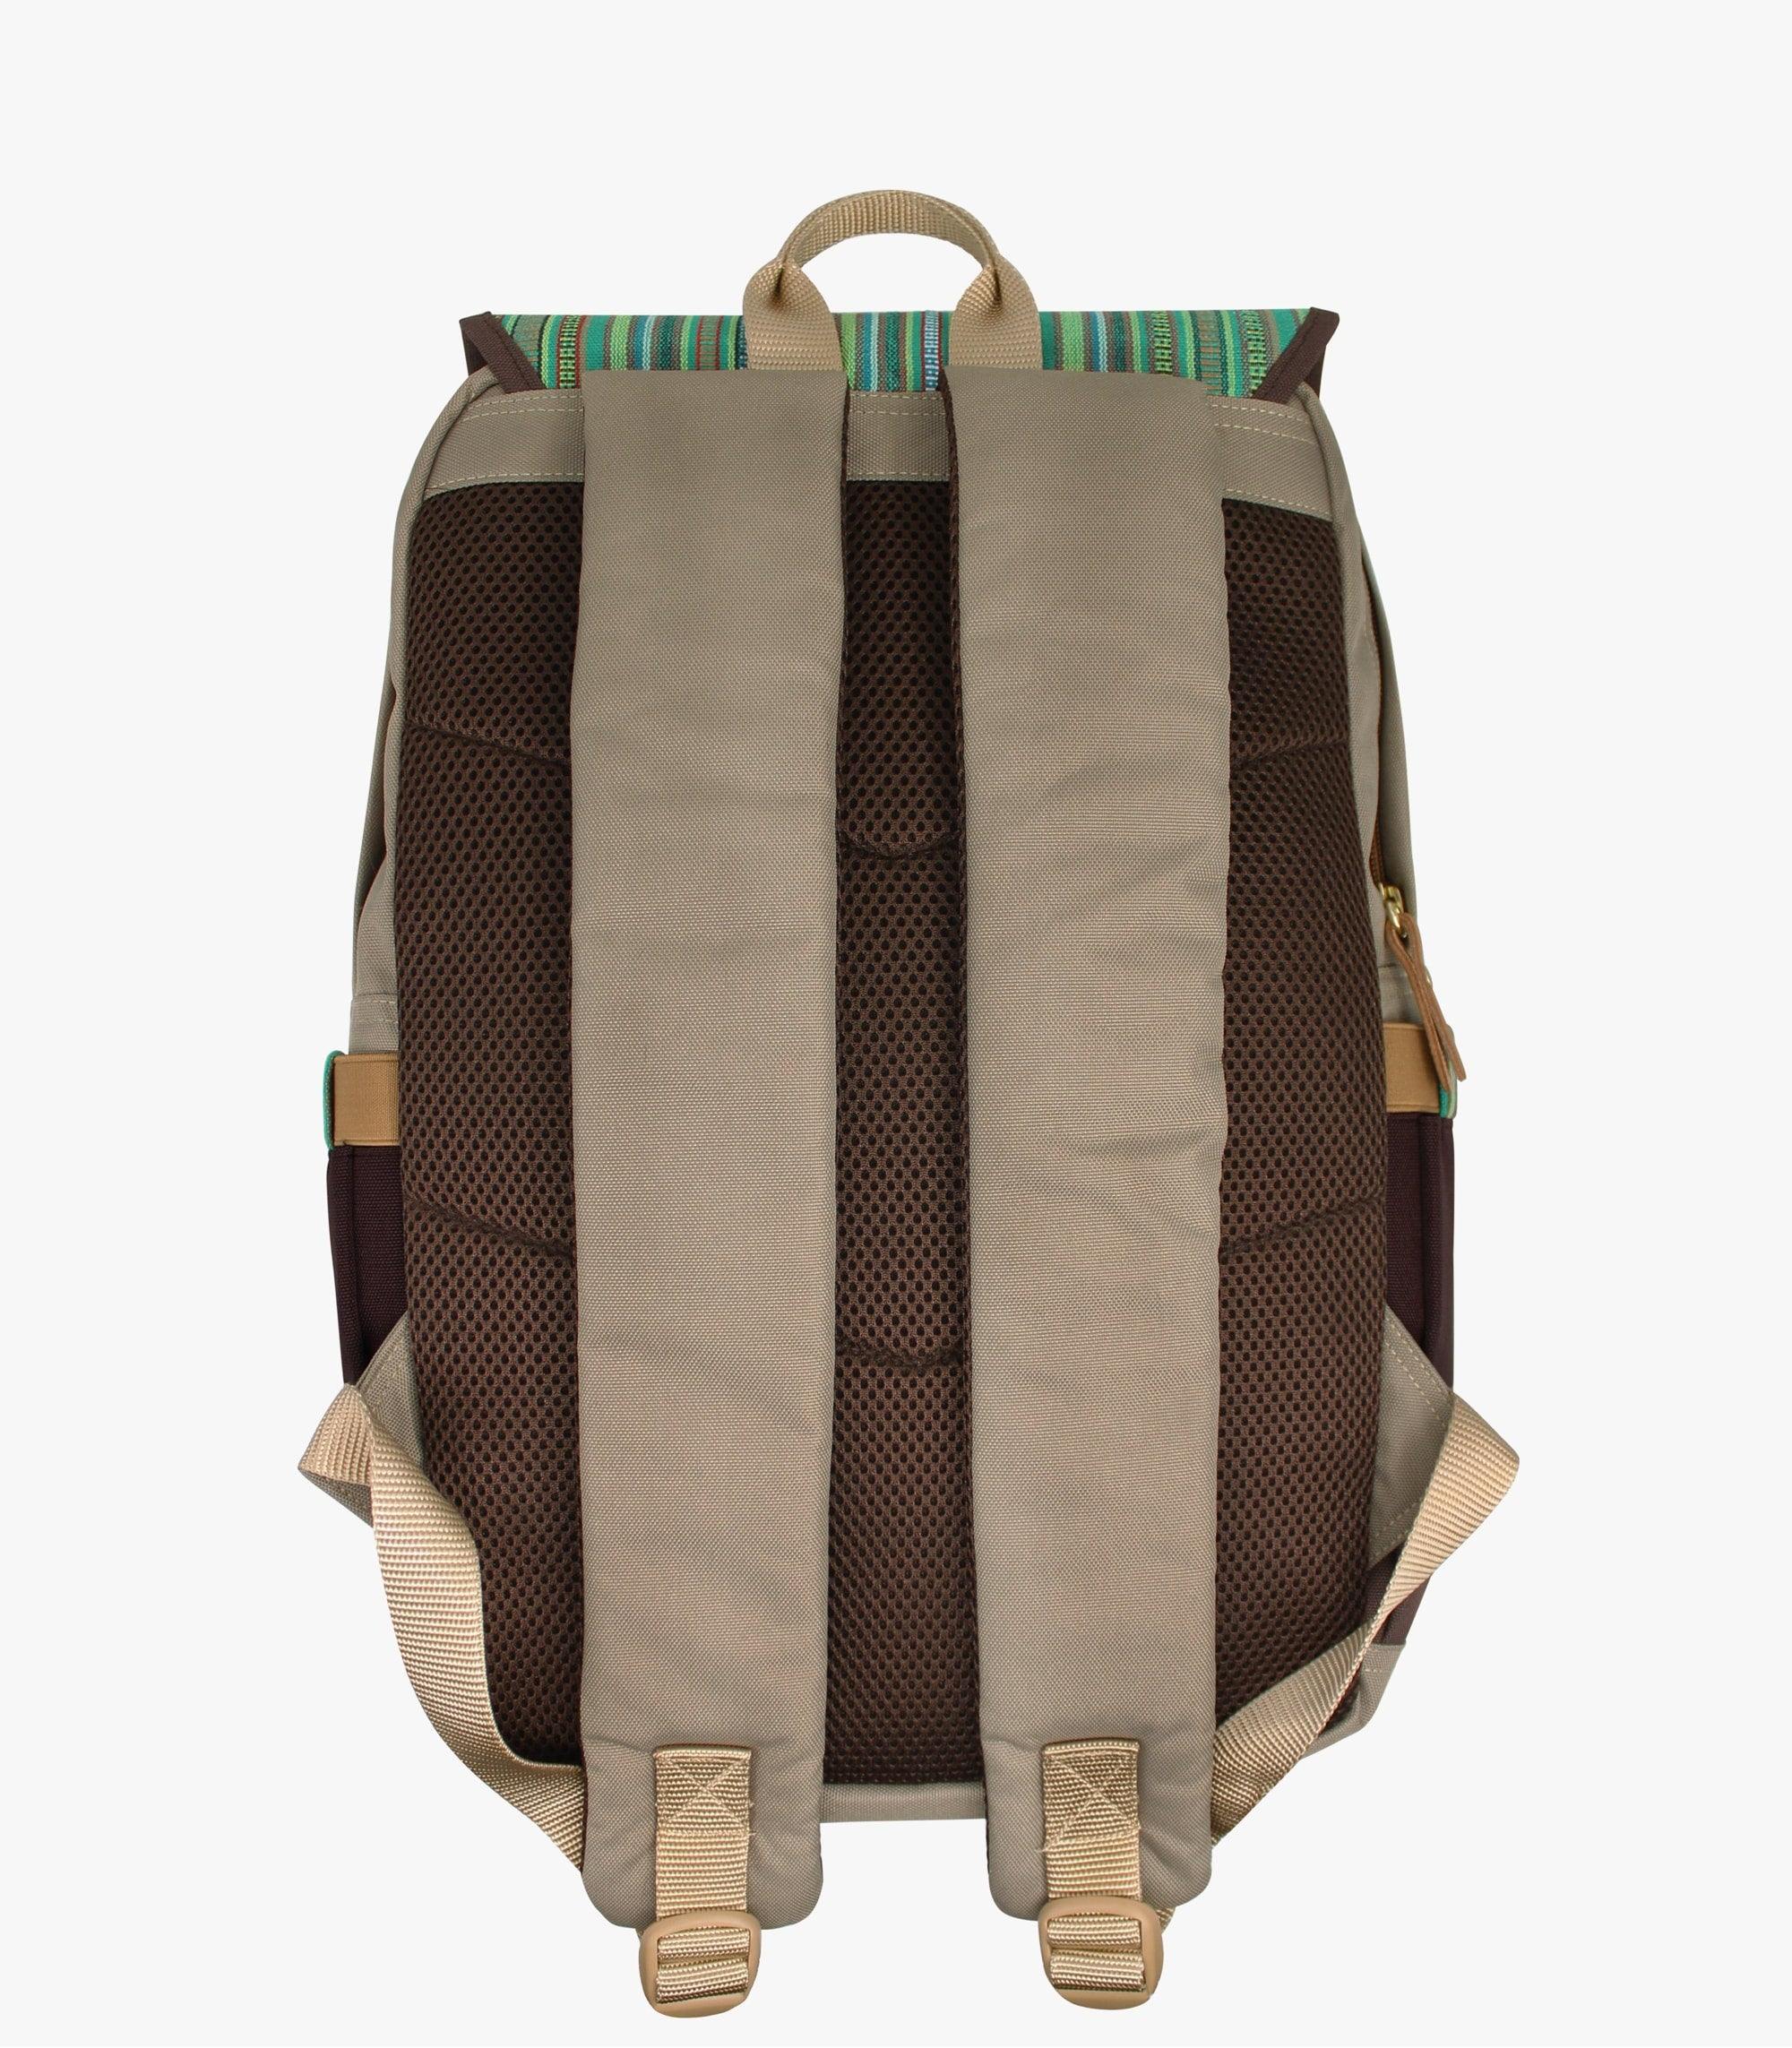 Camino Dos Backpack - AKABA - Green Back